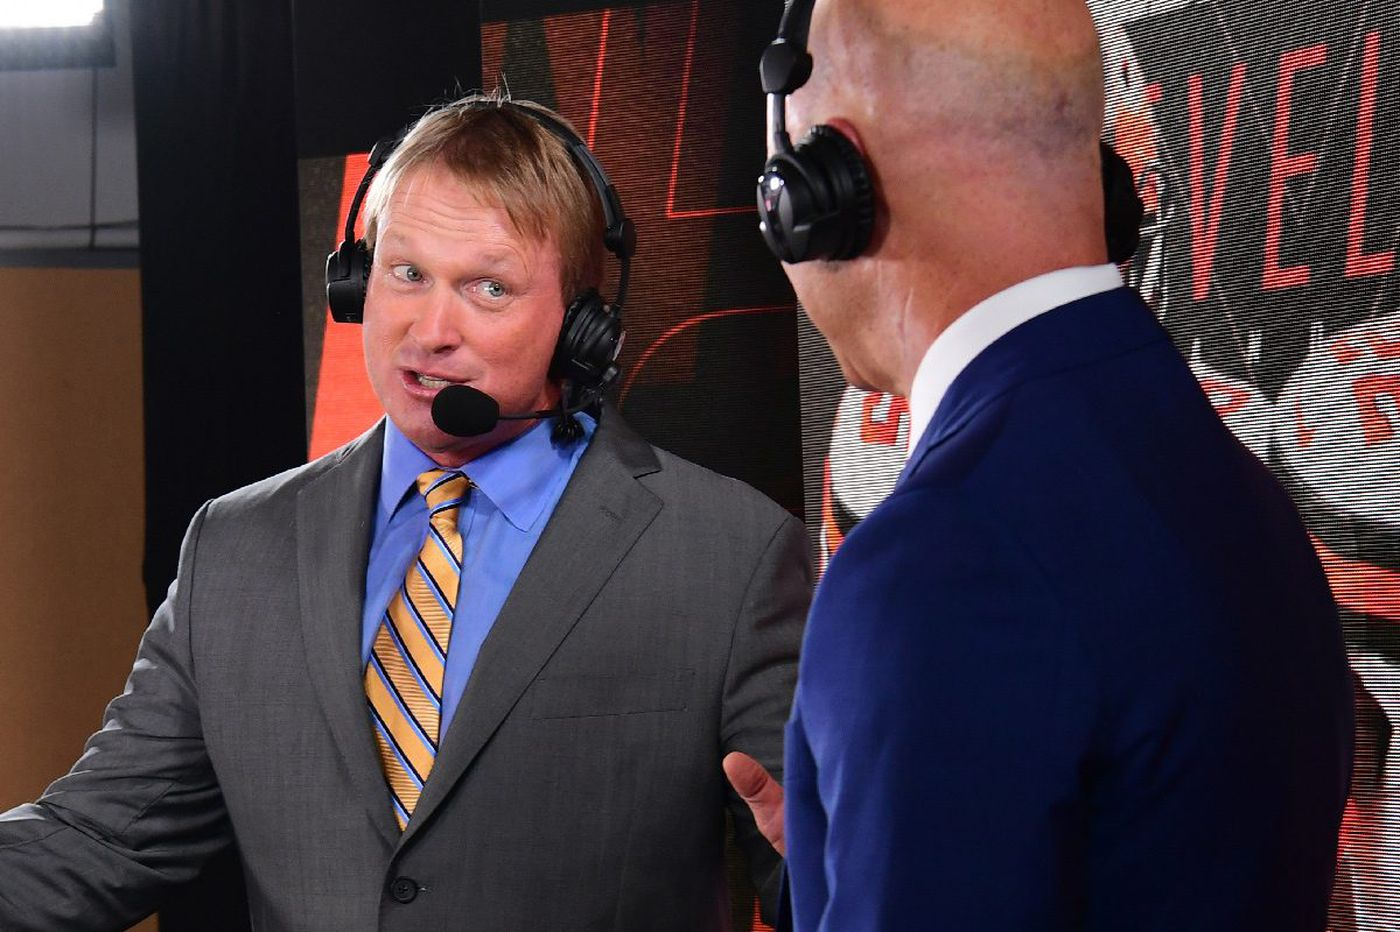 Jon Gruden rumor creates problems for ESPN and the NFL